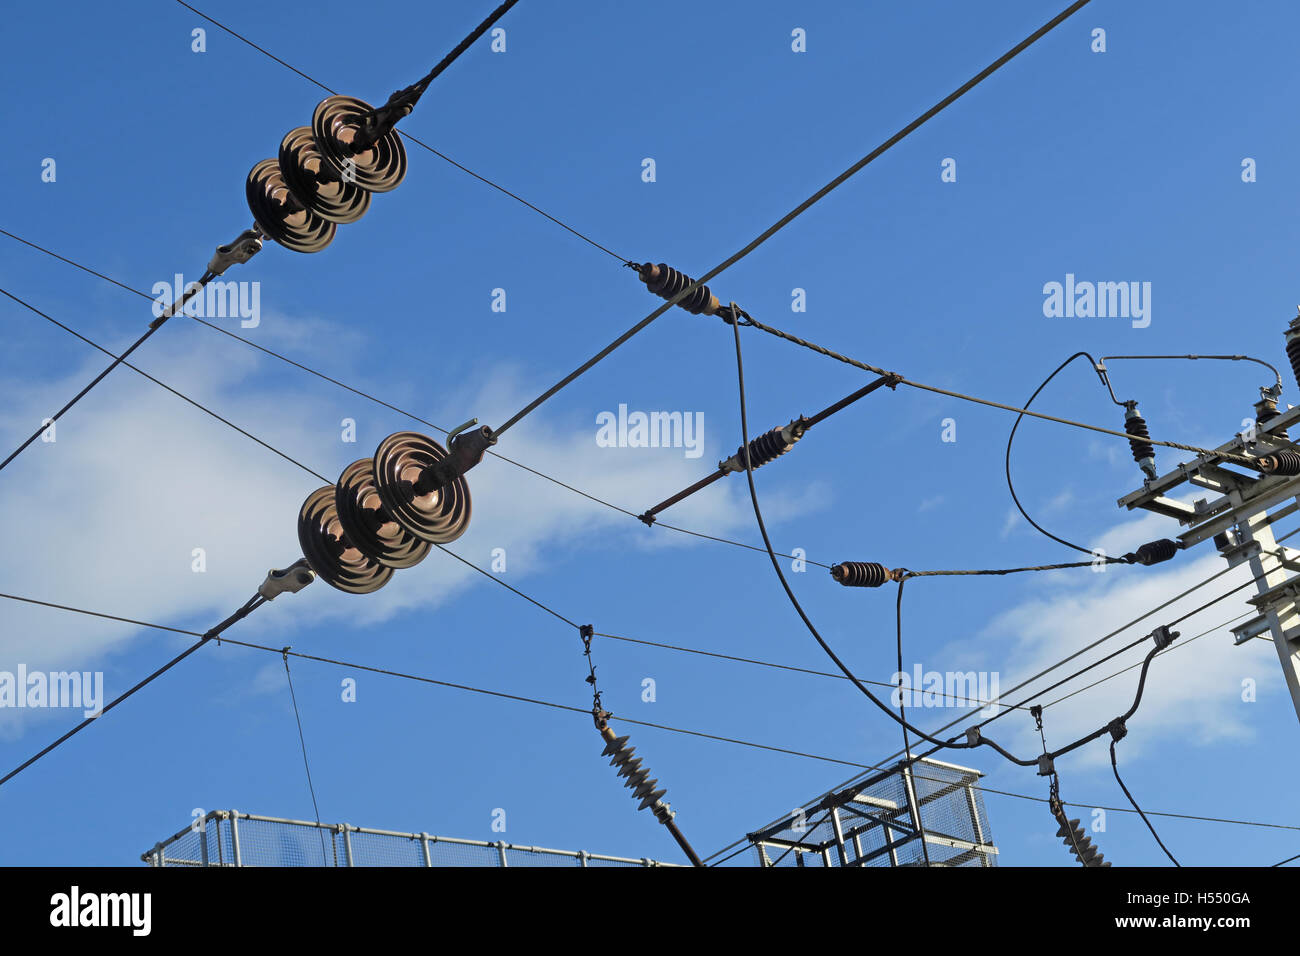 line,electrified,WCML,England,UK,west,coast,main,Virgin,Warrington,Cheshire,WBQ,Bank,Quay,cables,cable,copper,valuable,theft,steal,temptation,danger,unsafe,vandal,insulator,lead,stolen,crime,damage,kids,children,Overhead line,electric train line,West Coast Main Line,Bank Quay,Railway lines,GoTonySmith,@HotpixUK,Tony,Smith,UK,GB,Great,Britain,United,Kingdom,English,British,England,support,sun,sky,loss,cost,tax,payer,taxpayer,freight,delays,thieves,criminal,criminals,transformer,switch,gear,switchgear,signal,signalling,metal,scrap,offence,transport,police,forensic,marking,agents,scrap,railtrack,network,rail,insulator,insulators,glass,plastic,electrical,Buy Pictures of,Buy Images Of,Images of,Stock Images,Tony Smith,United Kingdom,Great Britain,British Isles,freight delays,scrap metal,Transport Police,British Transport Police,forensic marking agents,Scrap Metal Dealers Act,Network Rail